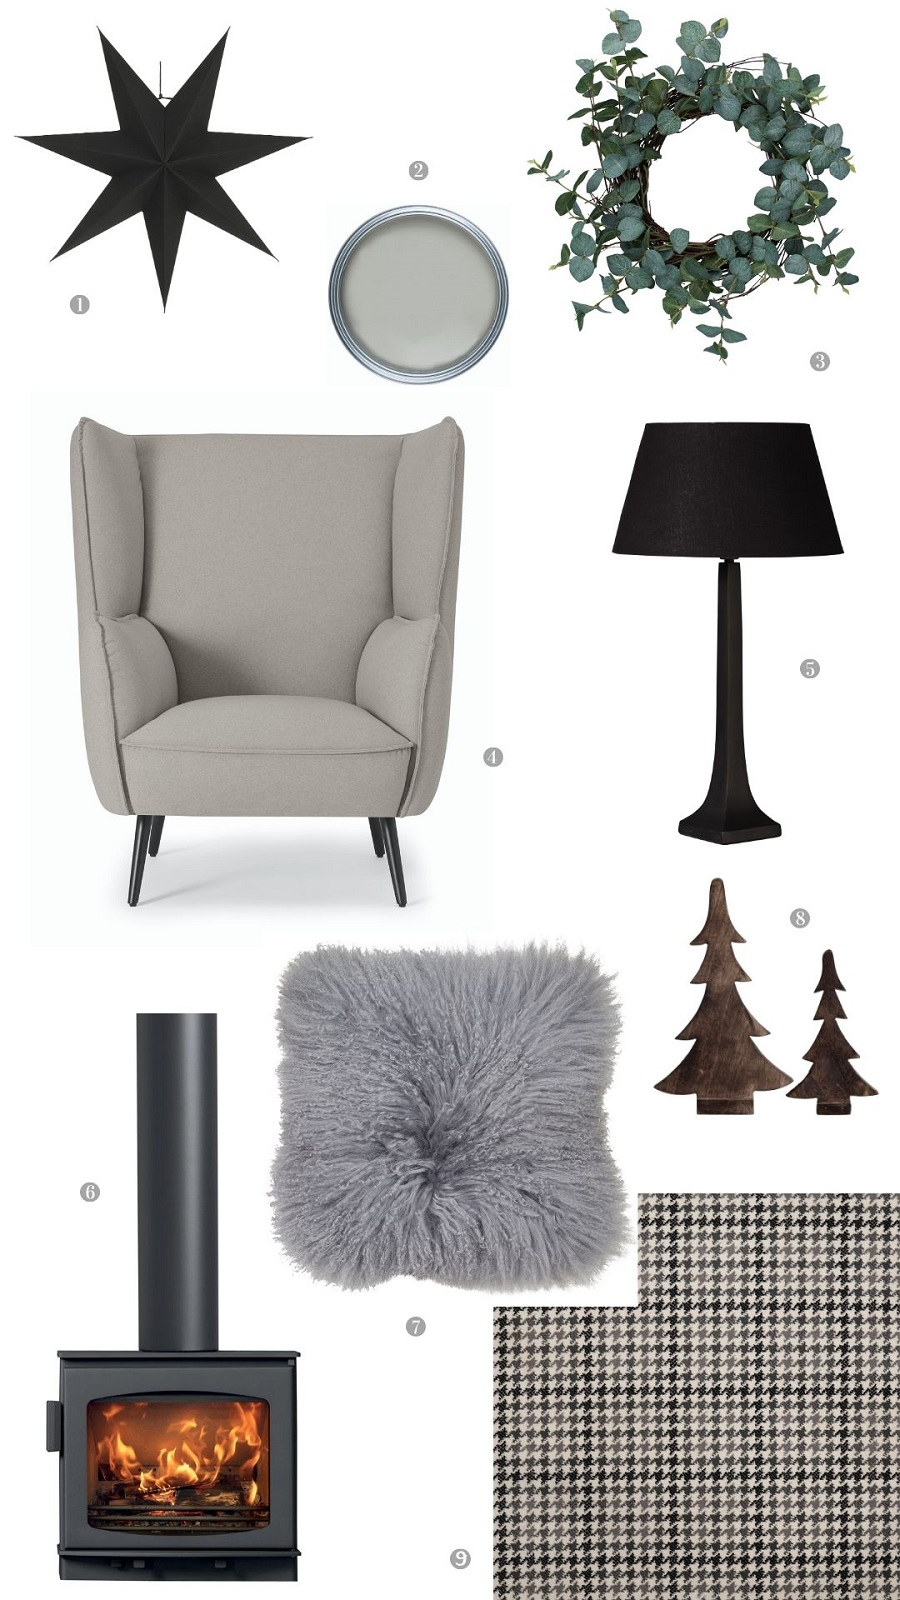 A Christmas Sitting Room Scheme for the Confirmed Minimalist (